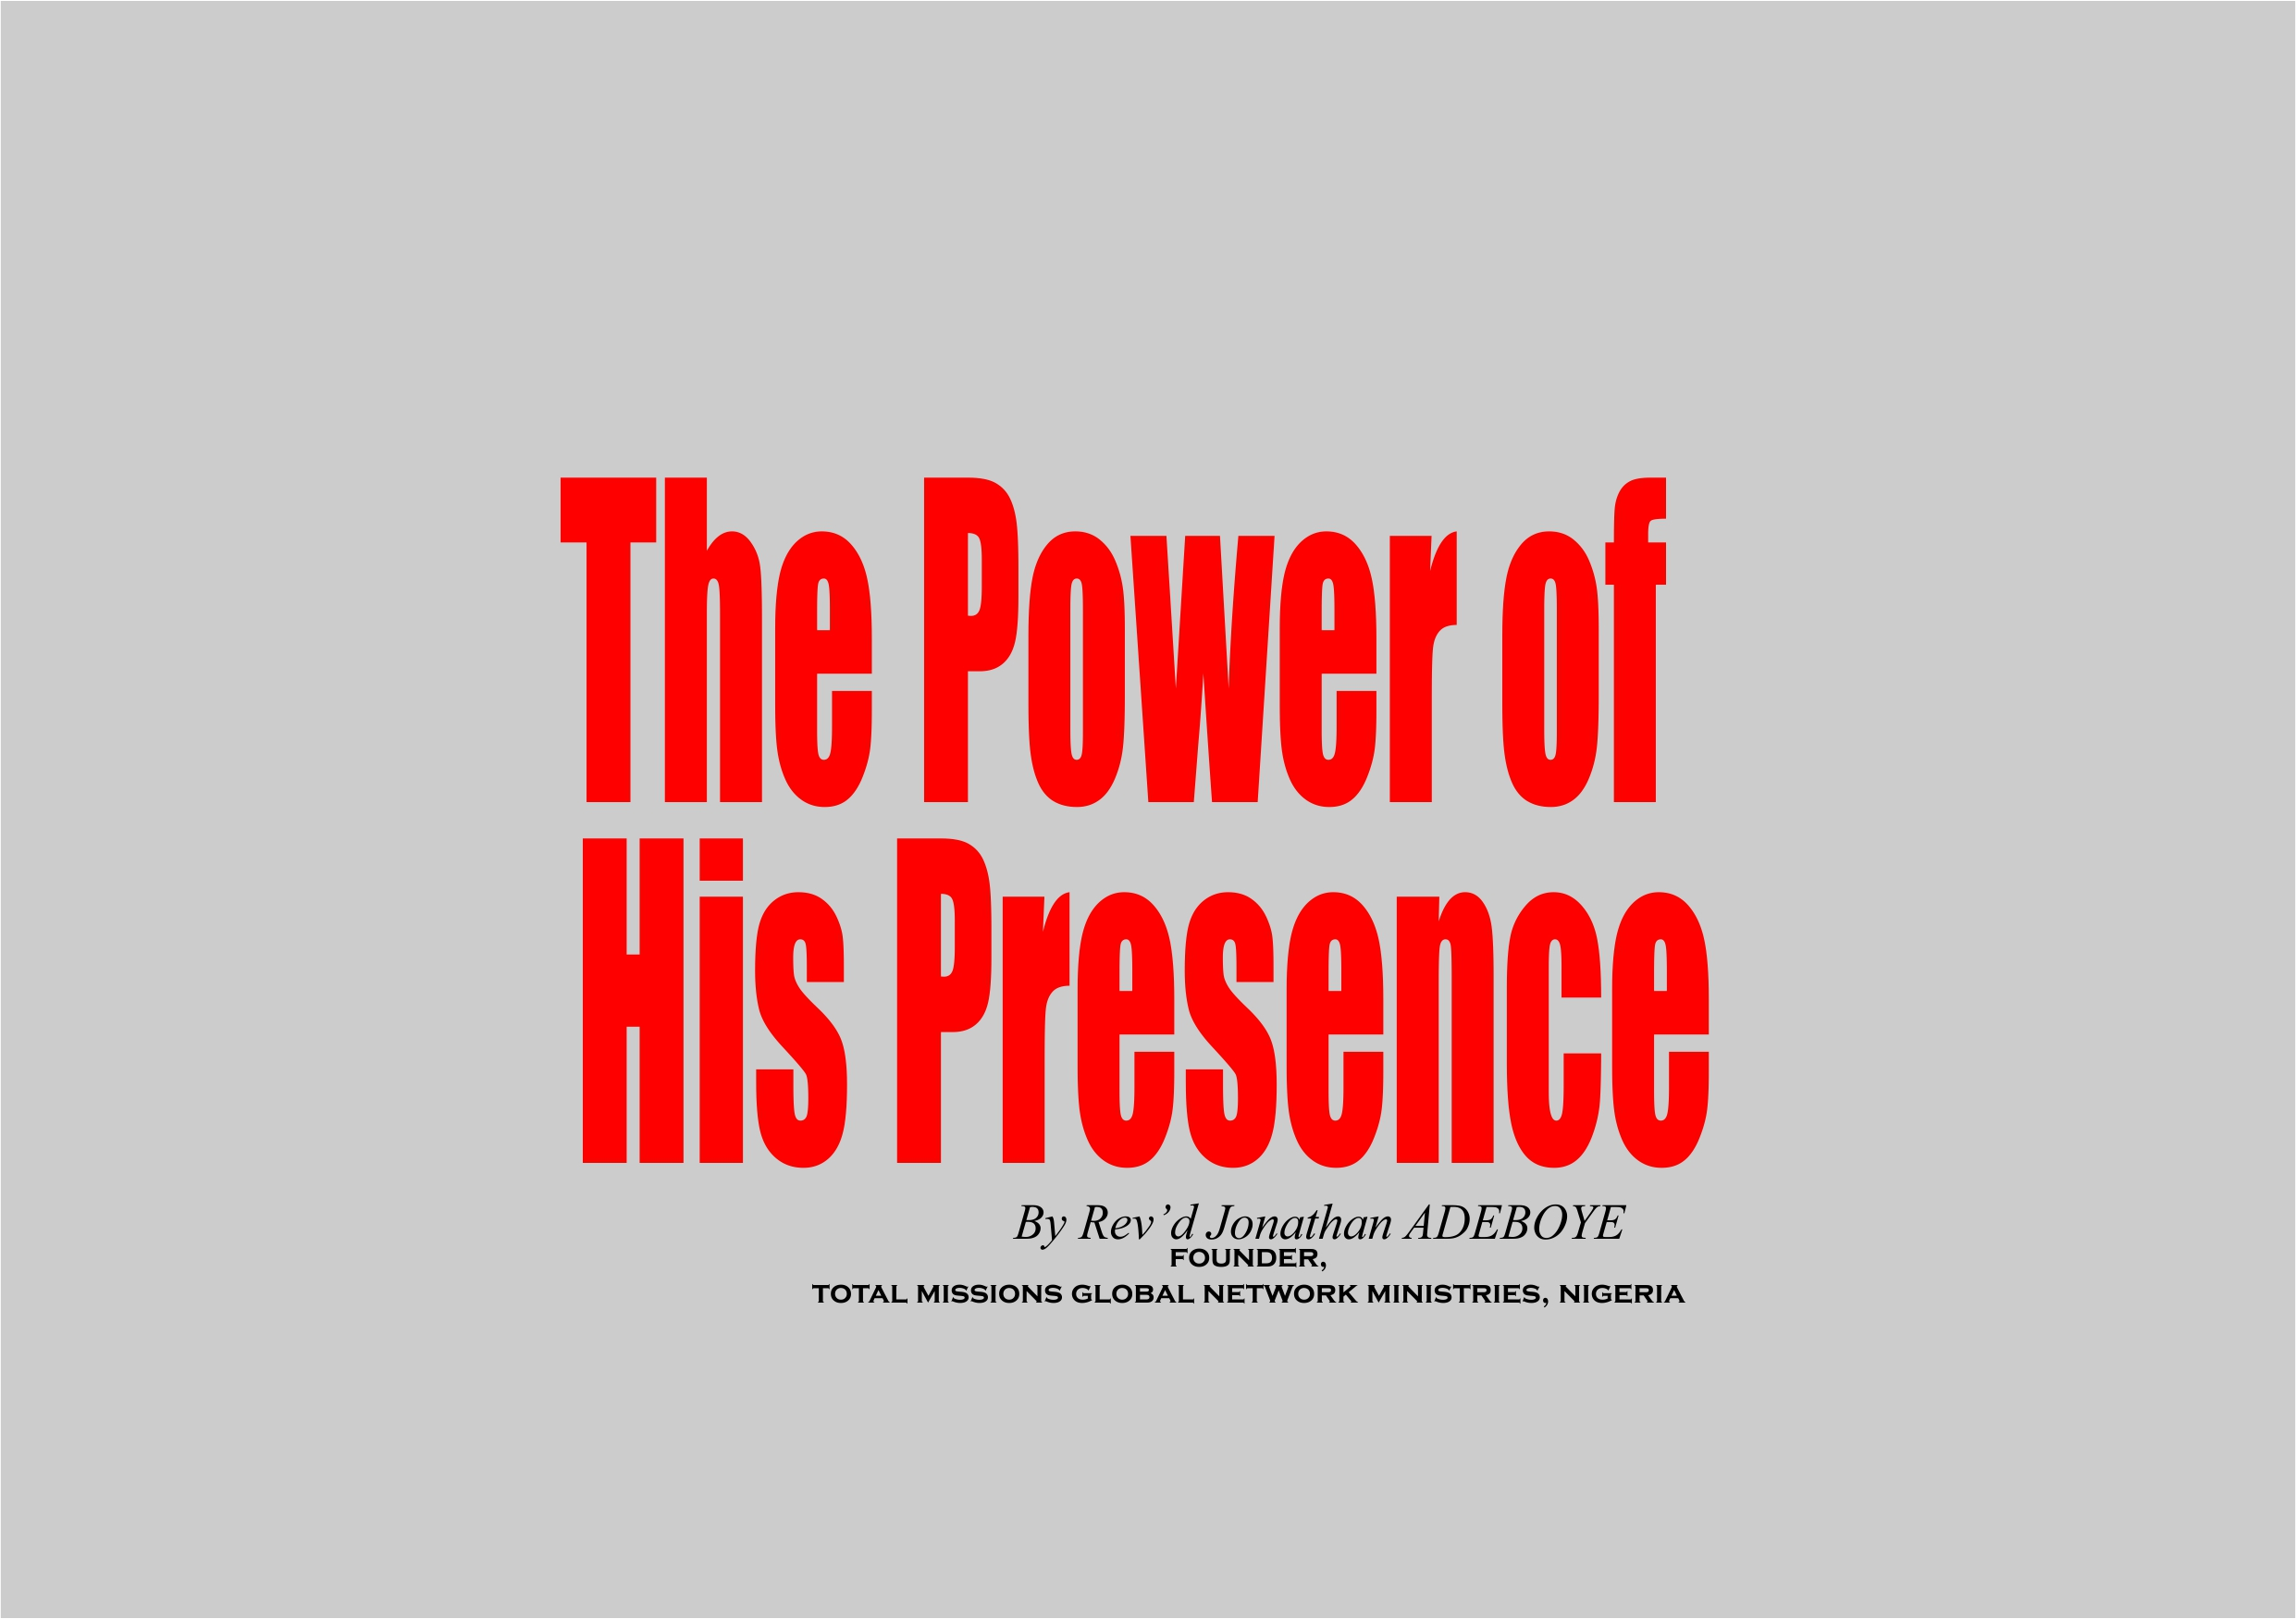 The Power of His Presence, by Rev'd Jonathan Adeboye